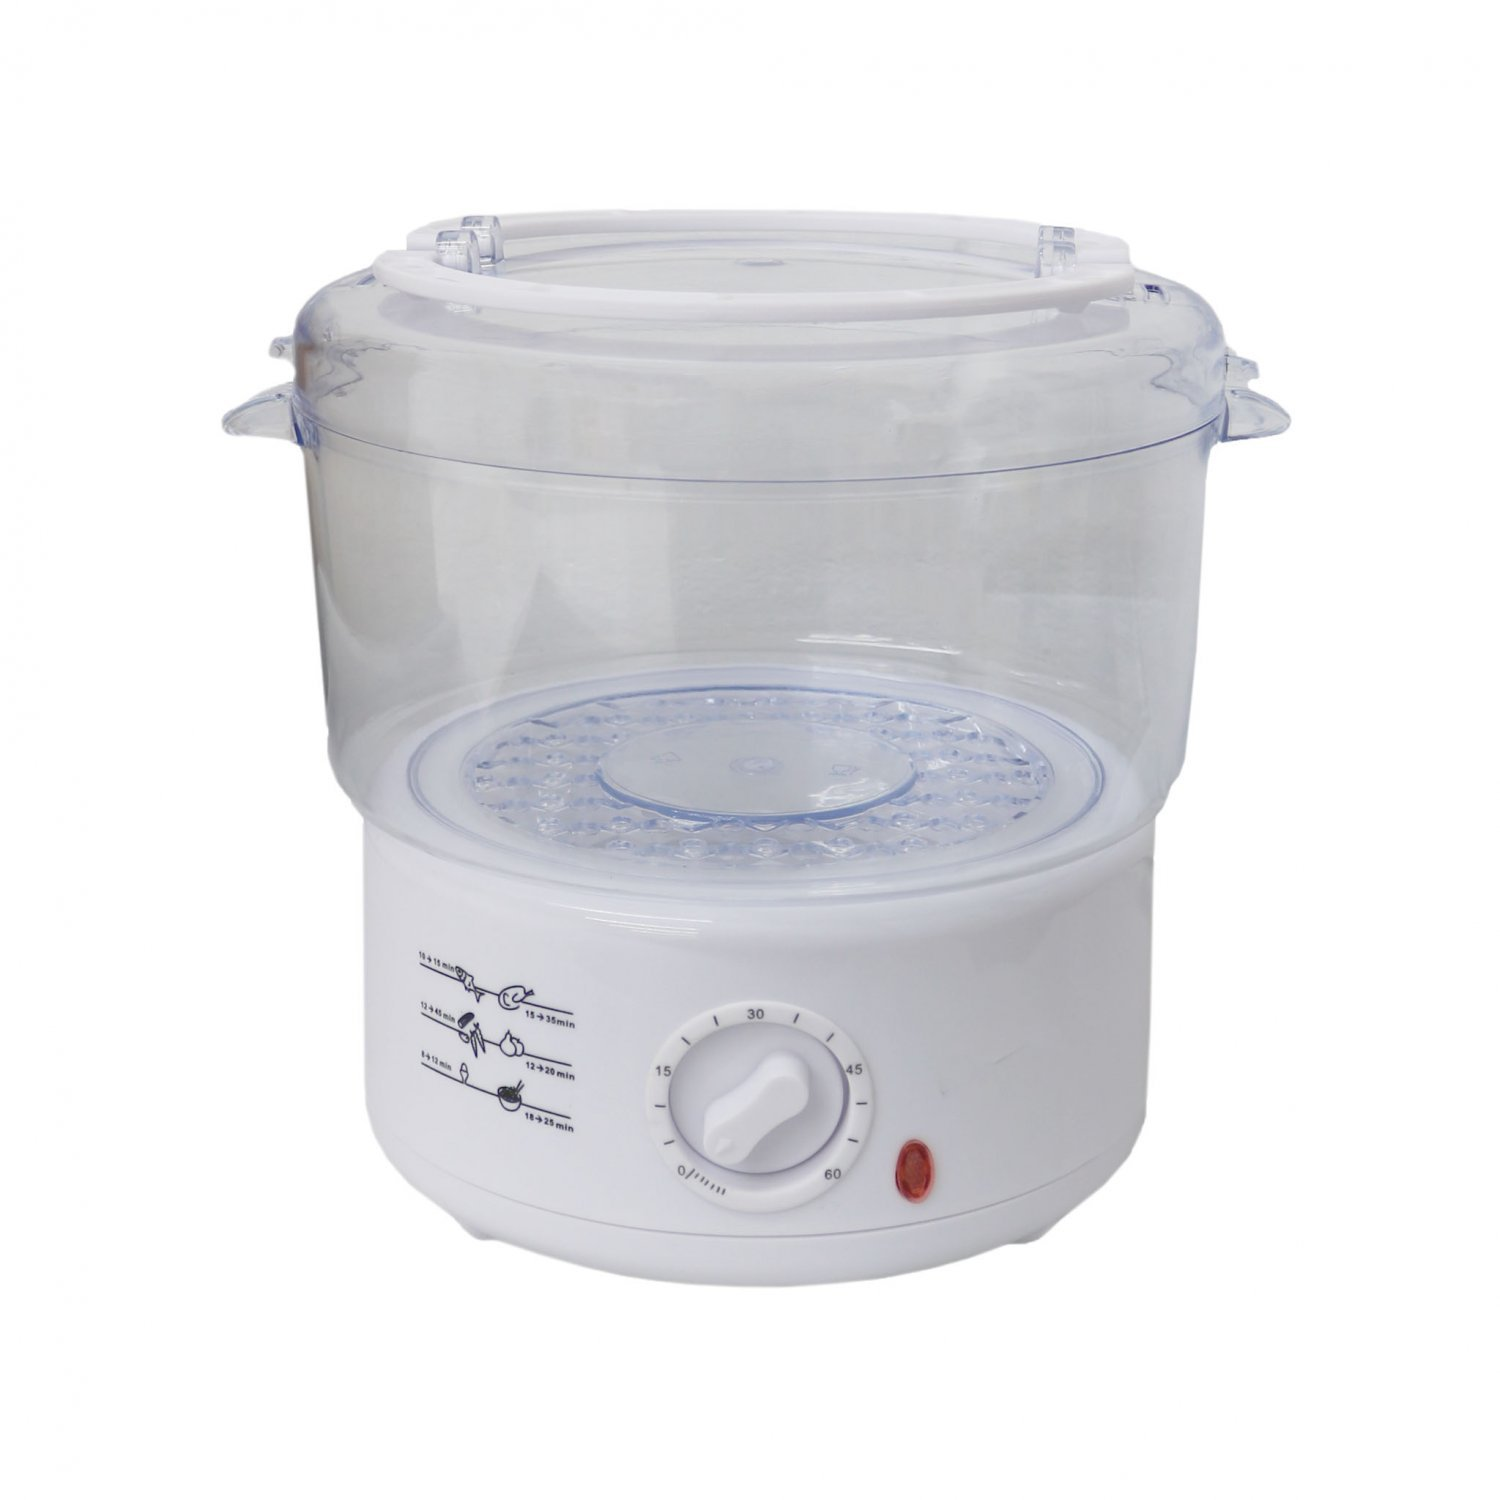 Electric Steam Cooking ~ Layer l compact electric food steamer steam cooker